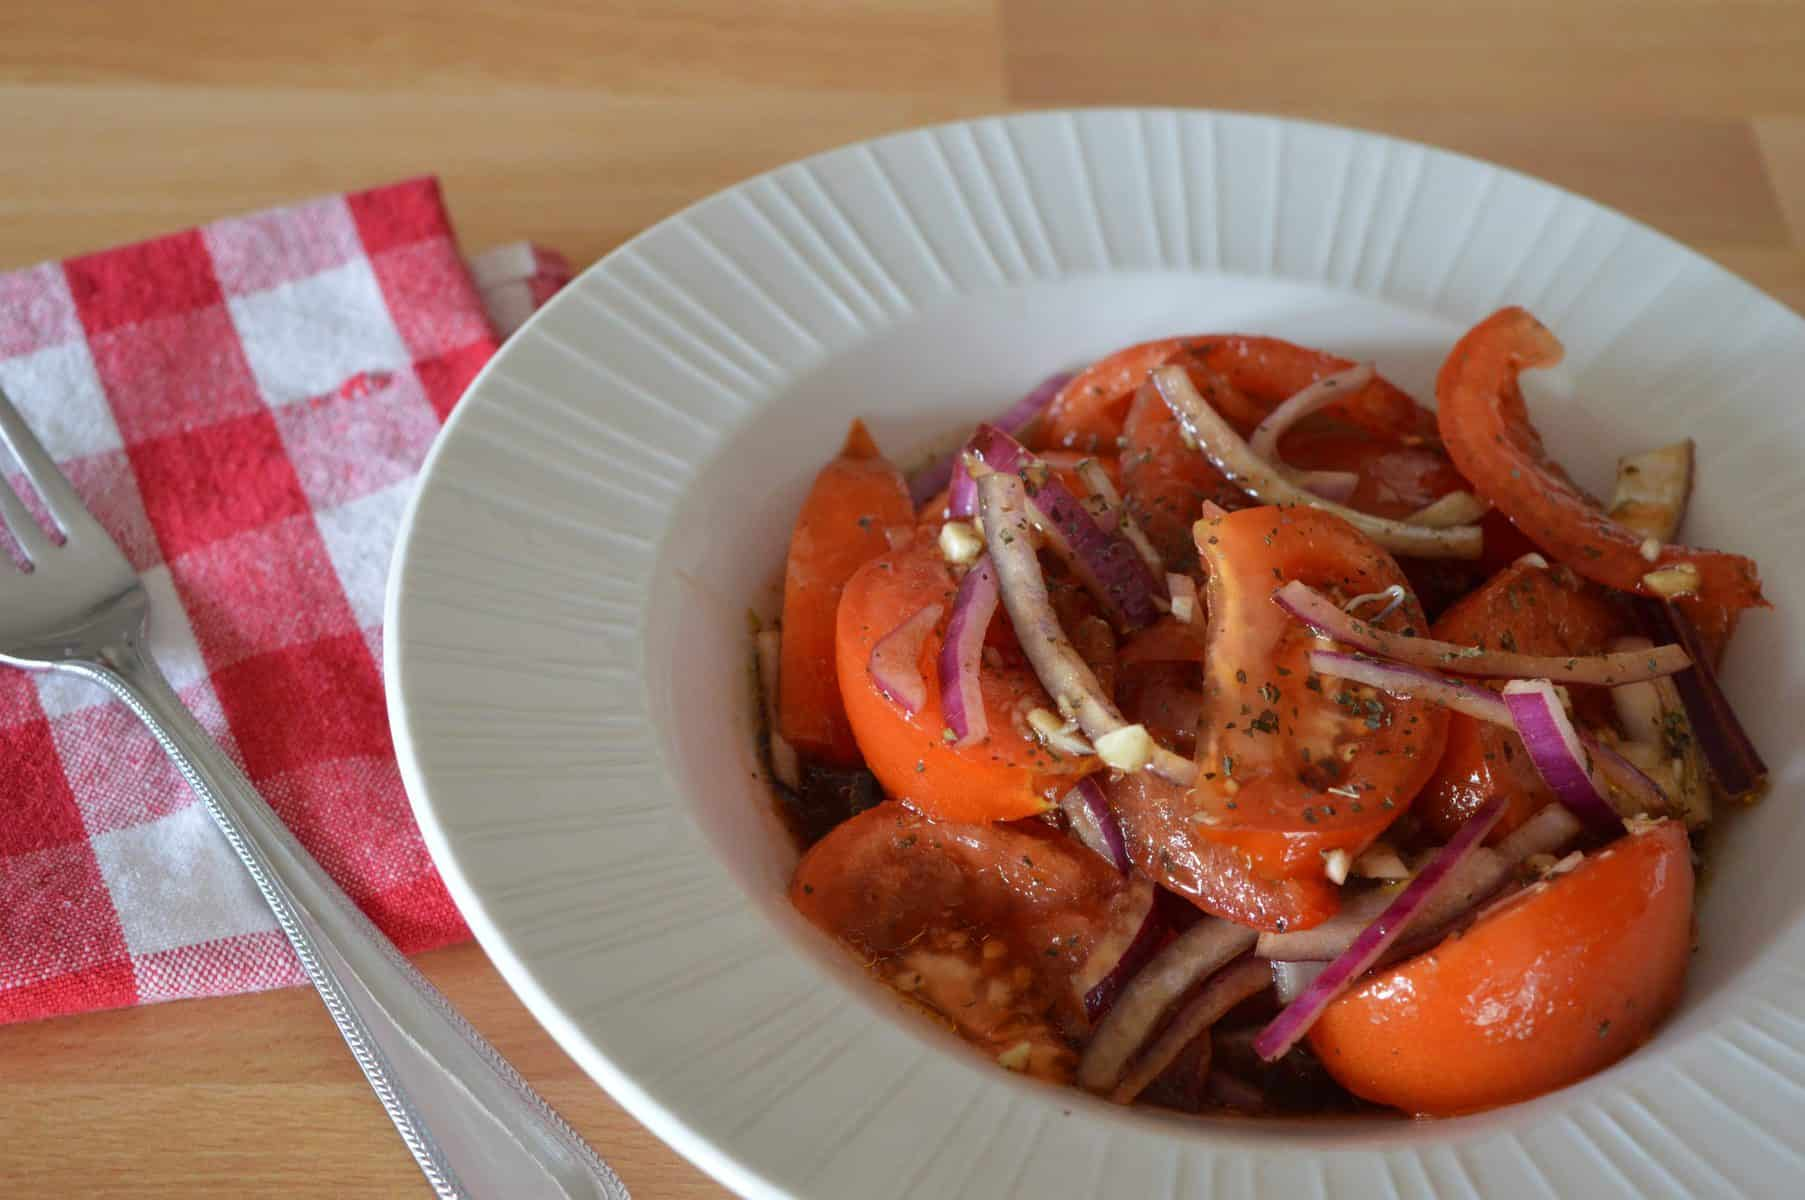 Italian Tomato Onion Salad in a white bowl with a red and white checker napkin next to it.